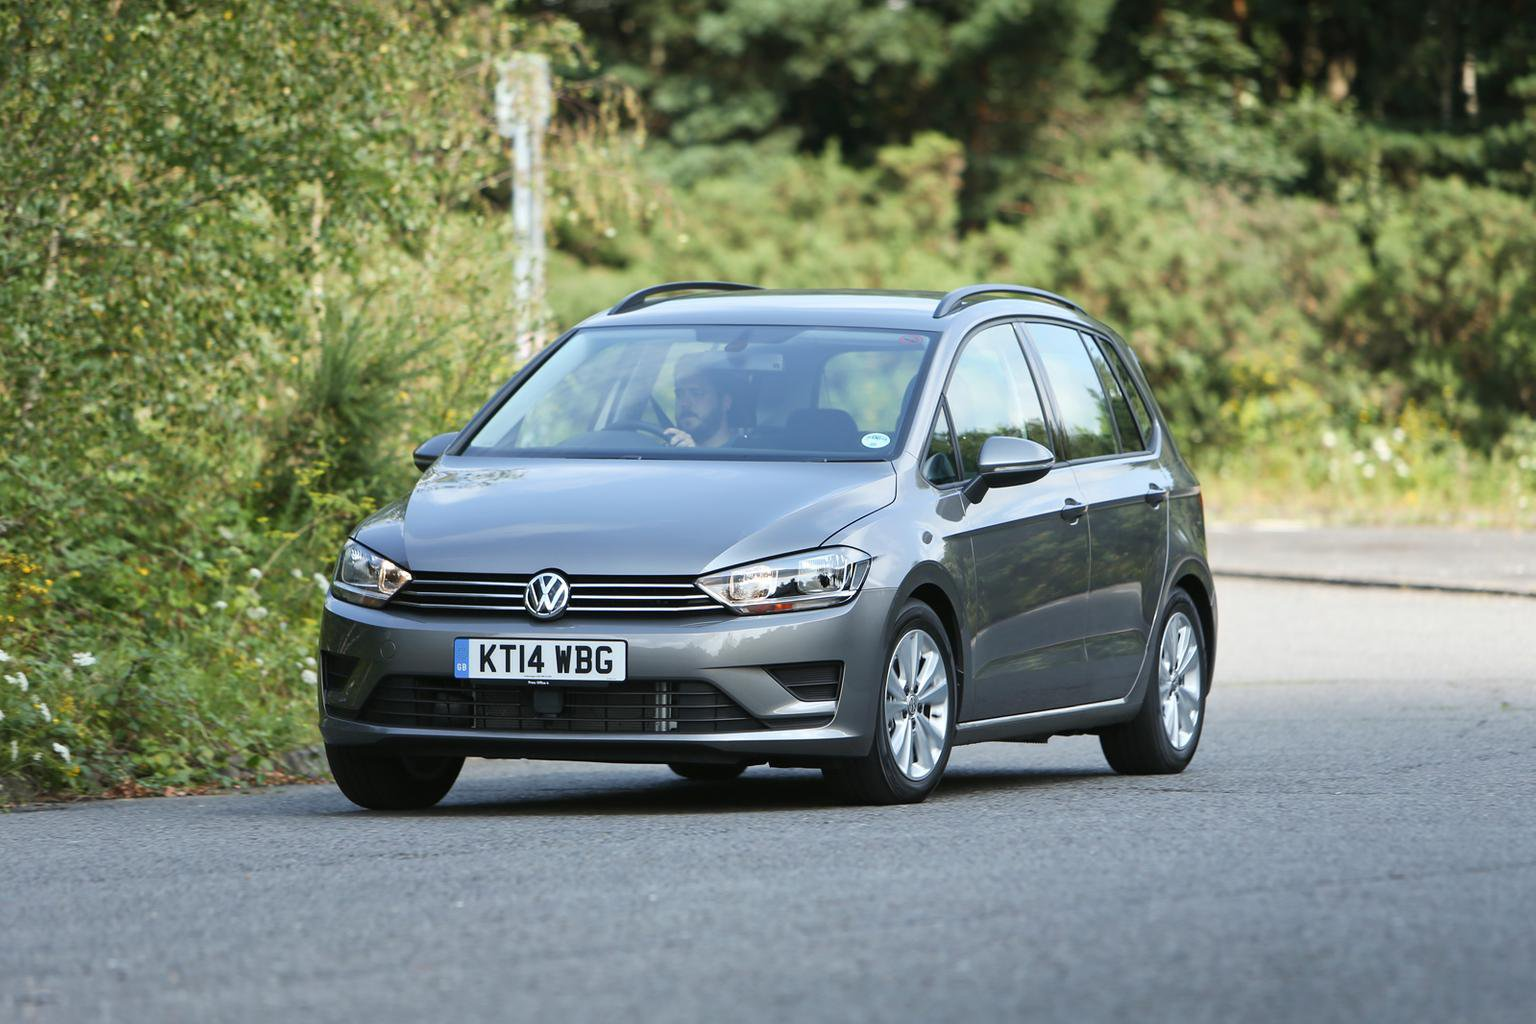 2014 Volkswagen Golf SV review